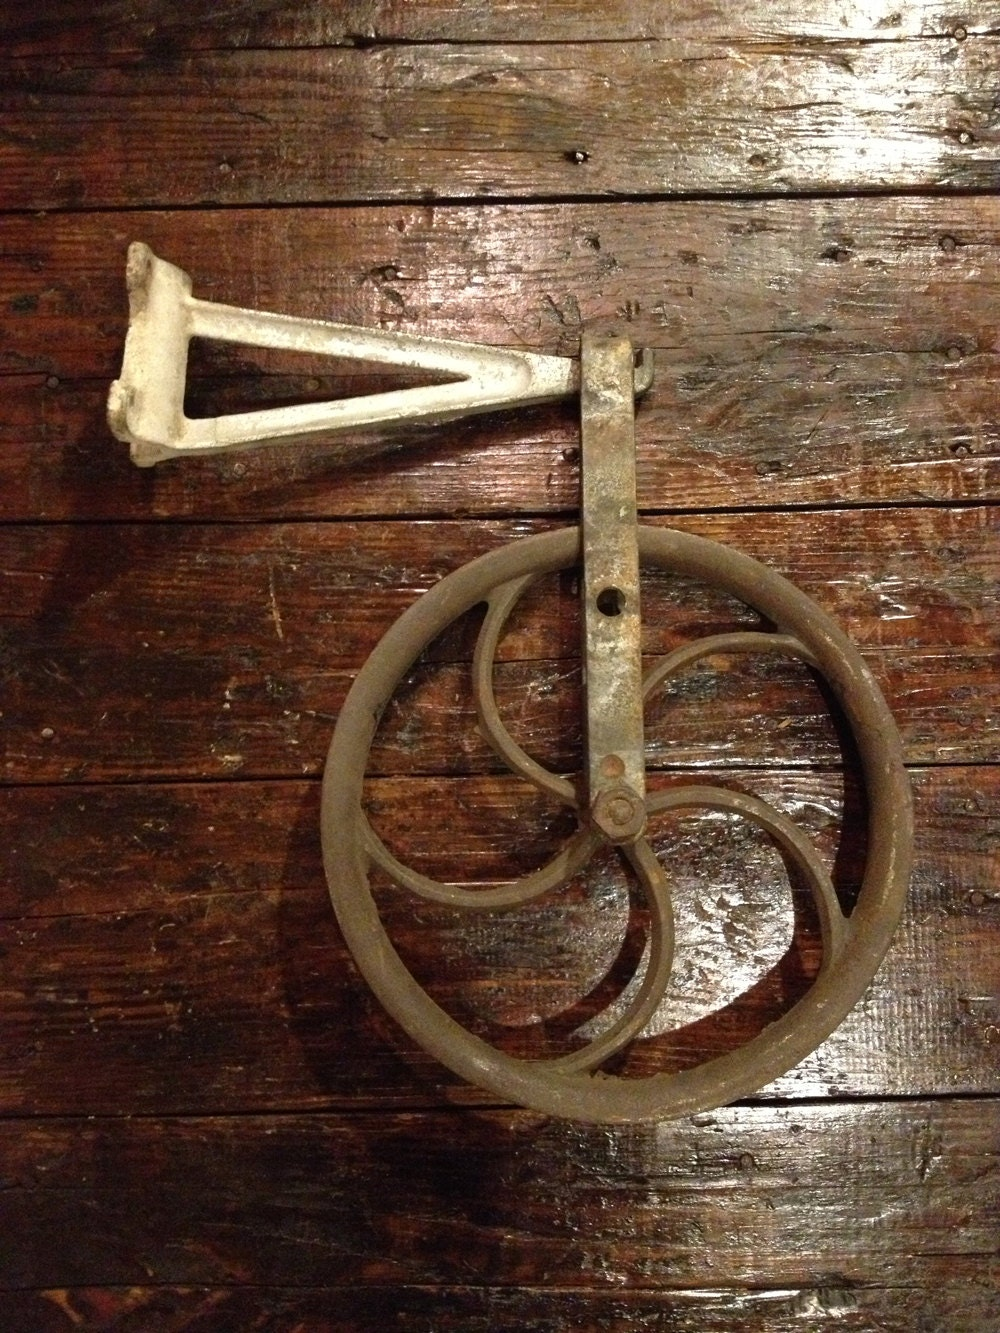 Cast Iron Pulleys For Sale : Vintage cast iron pulley hay wheel machine age rustic